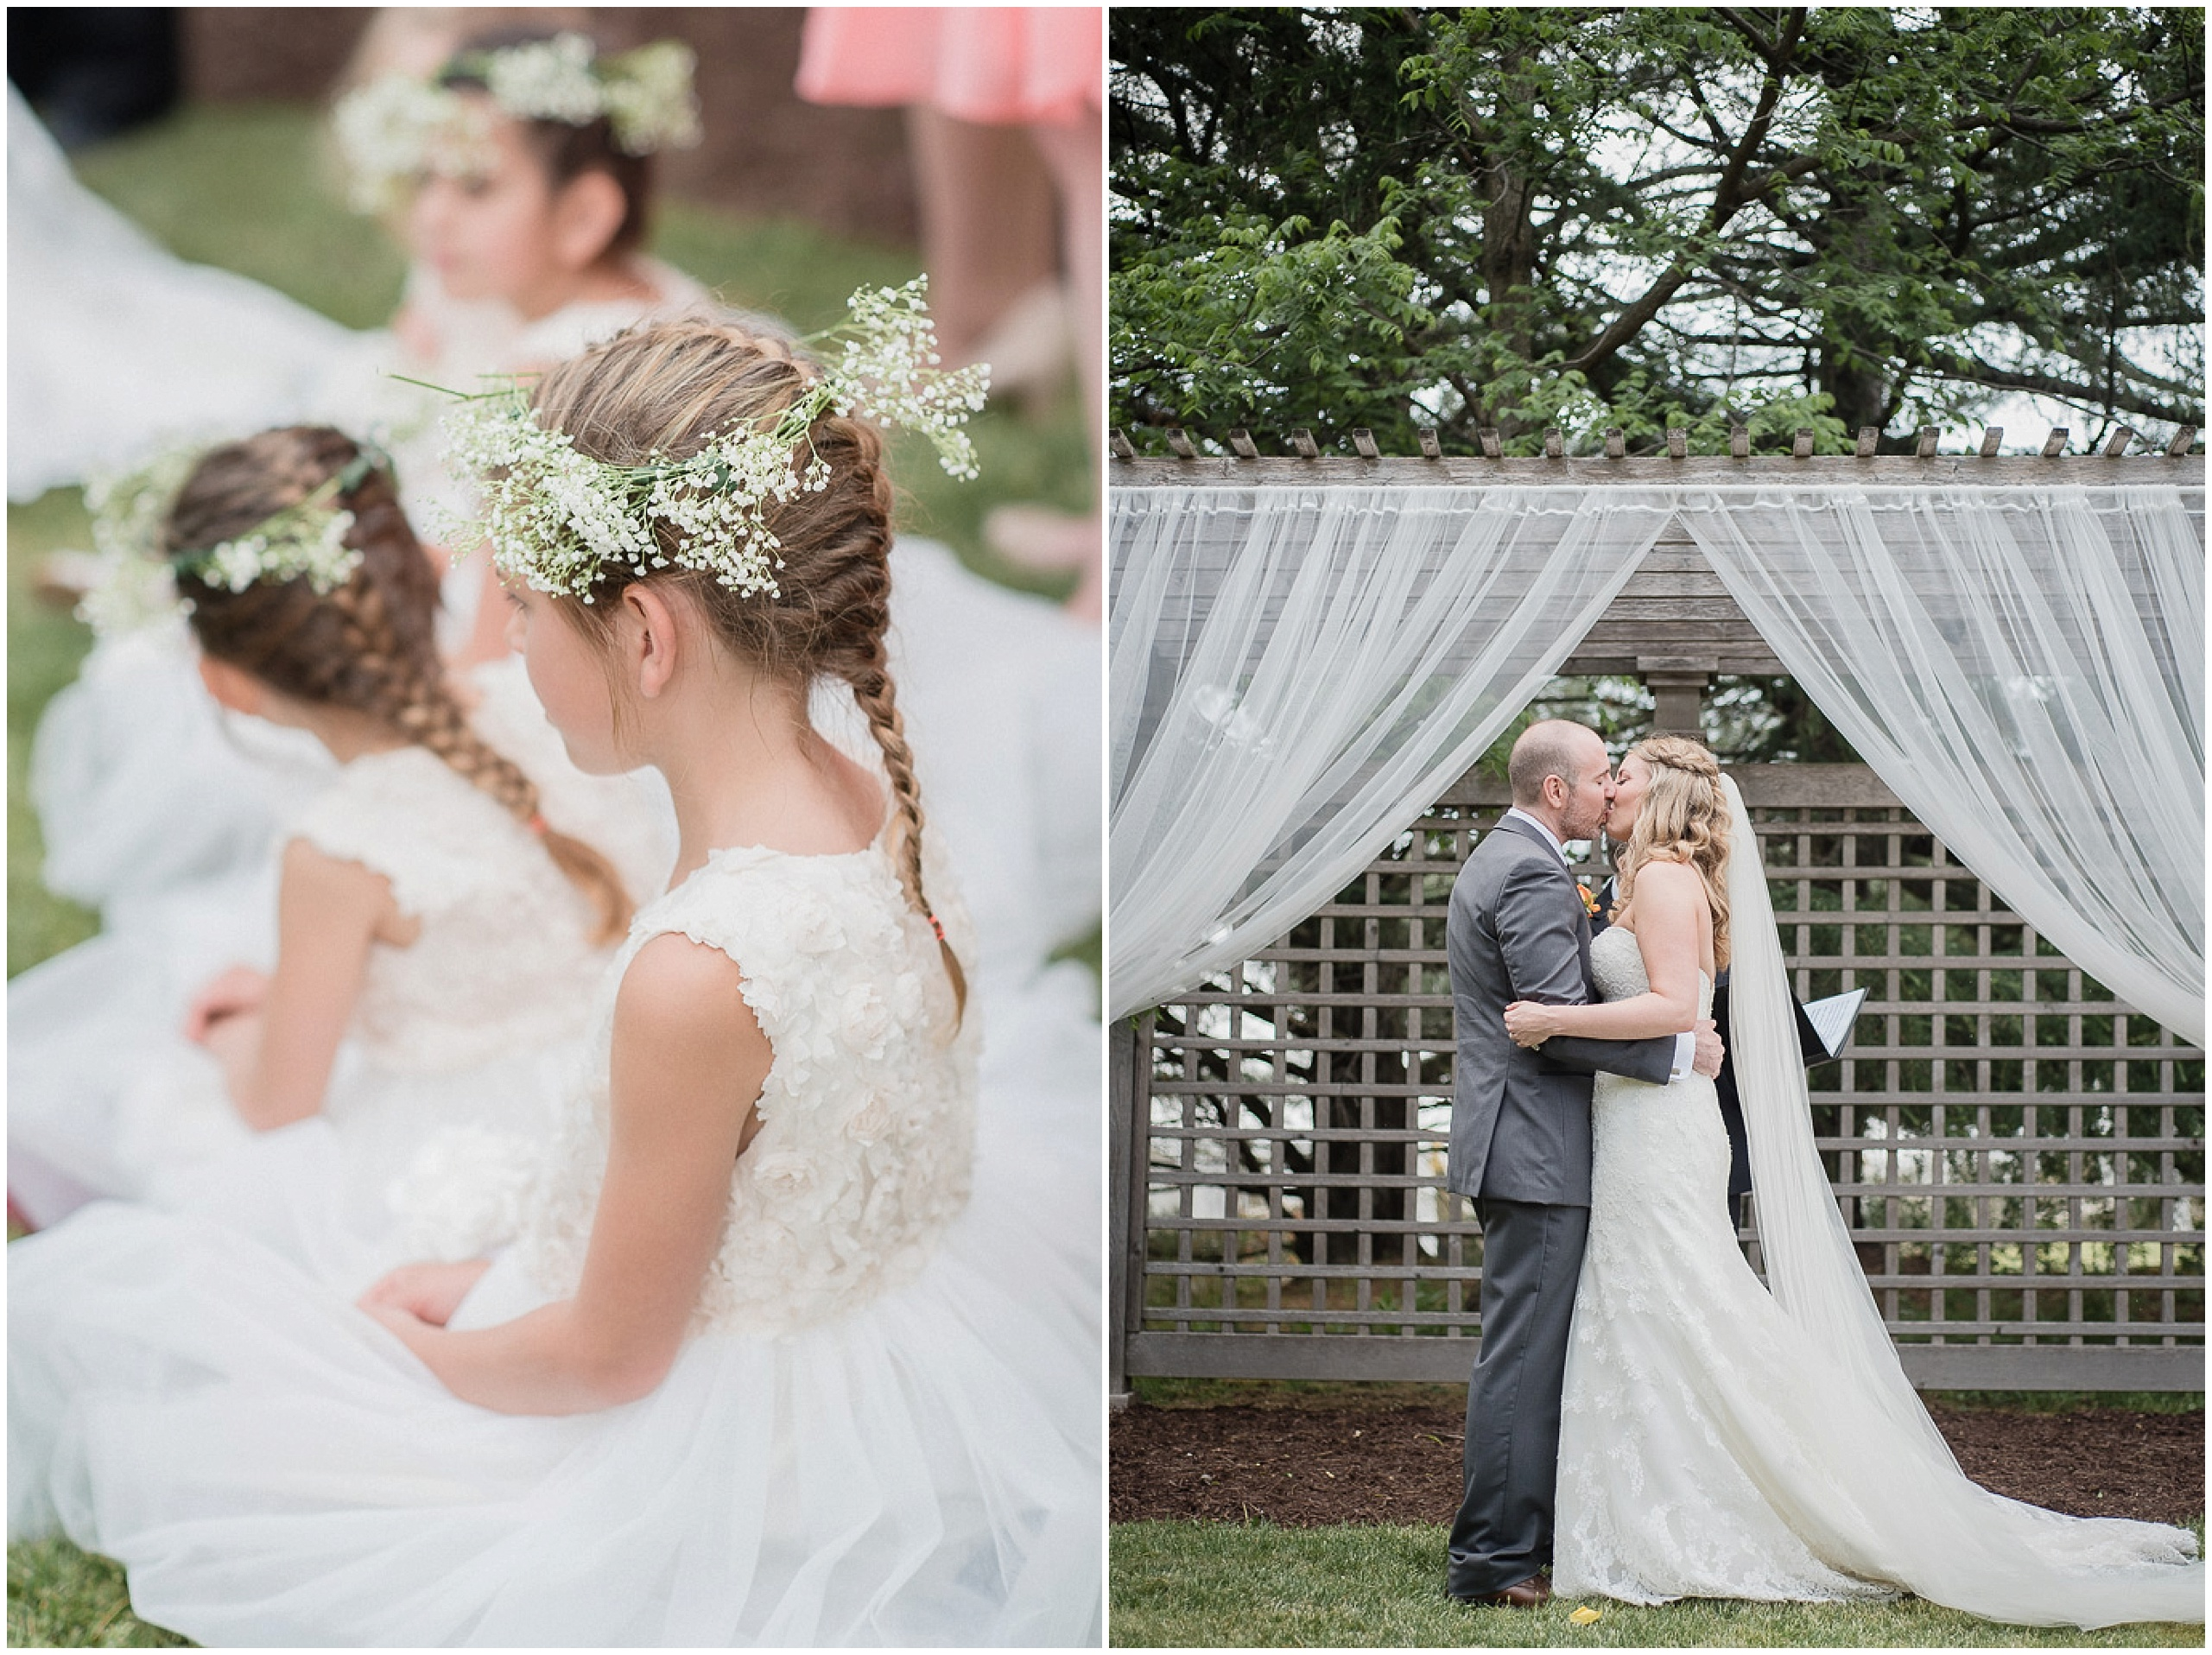 Rustic Baby's Breath Flower Crowns at a Knollwood Golf Course Wedding in Hamilton, Ontario by Jenn Kavanagh Photography